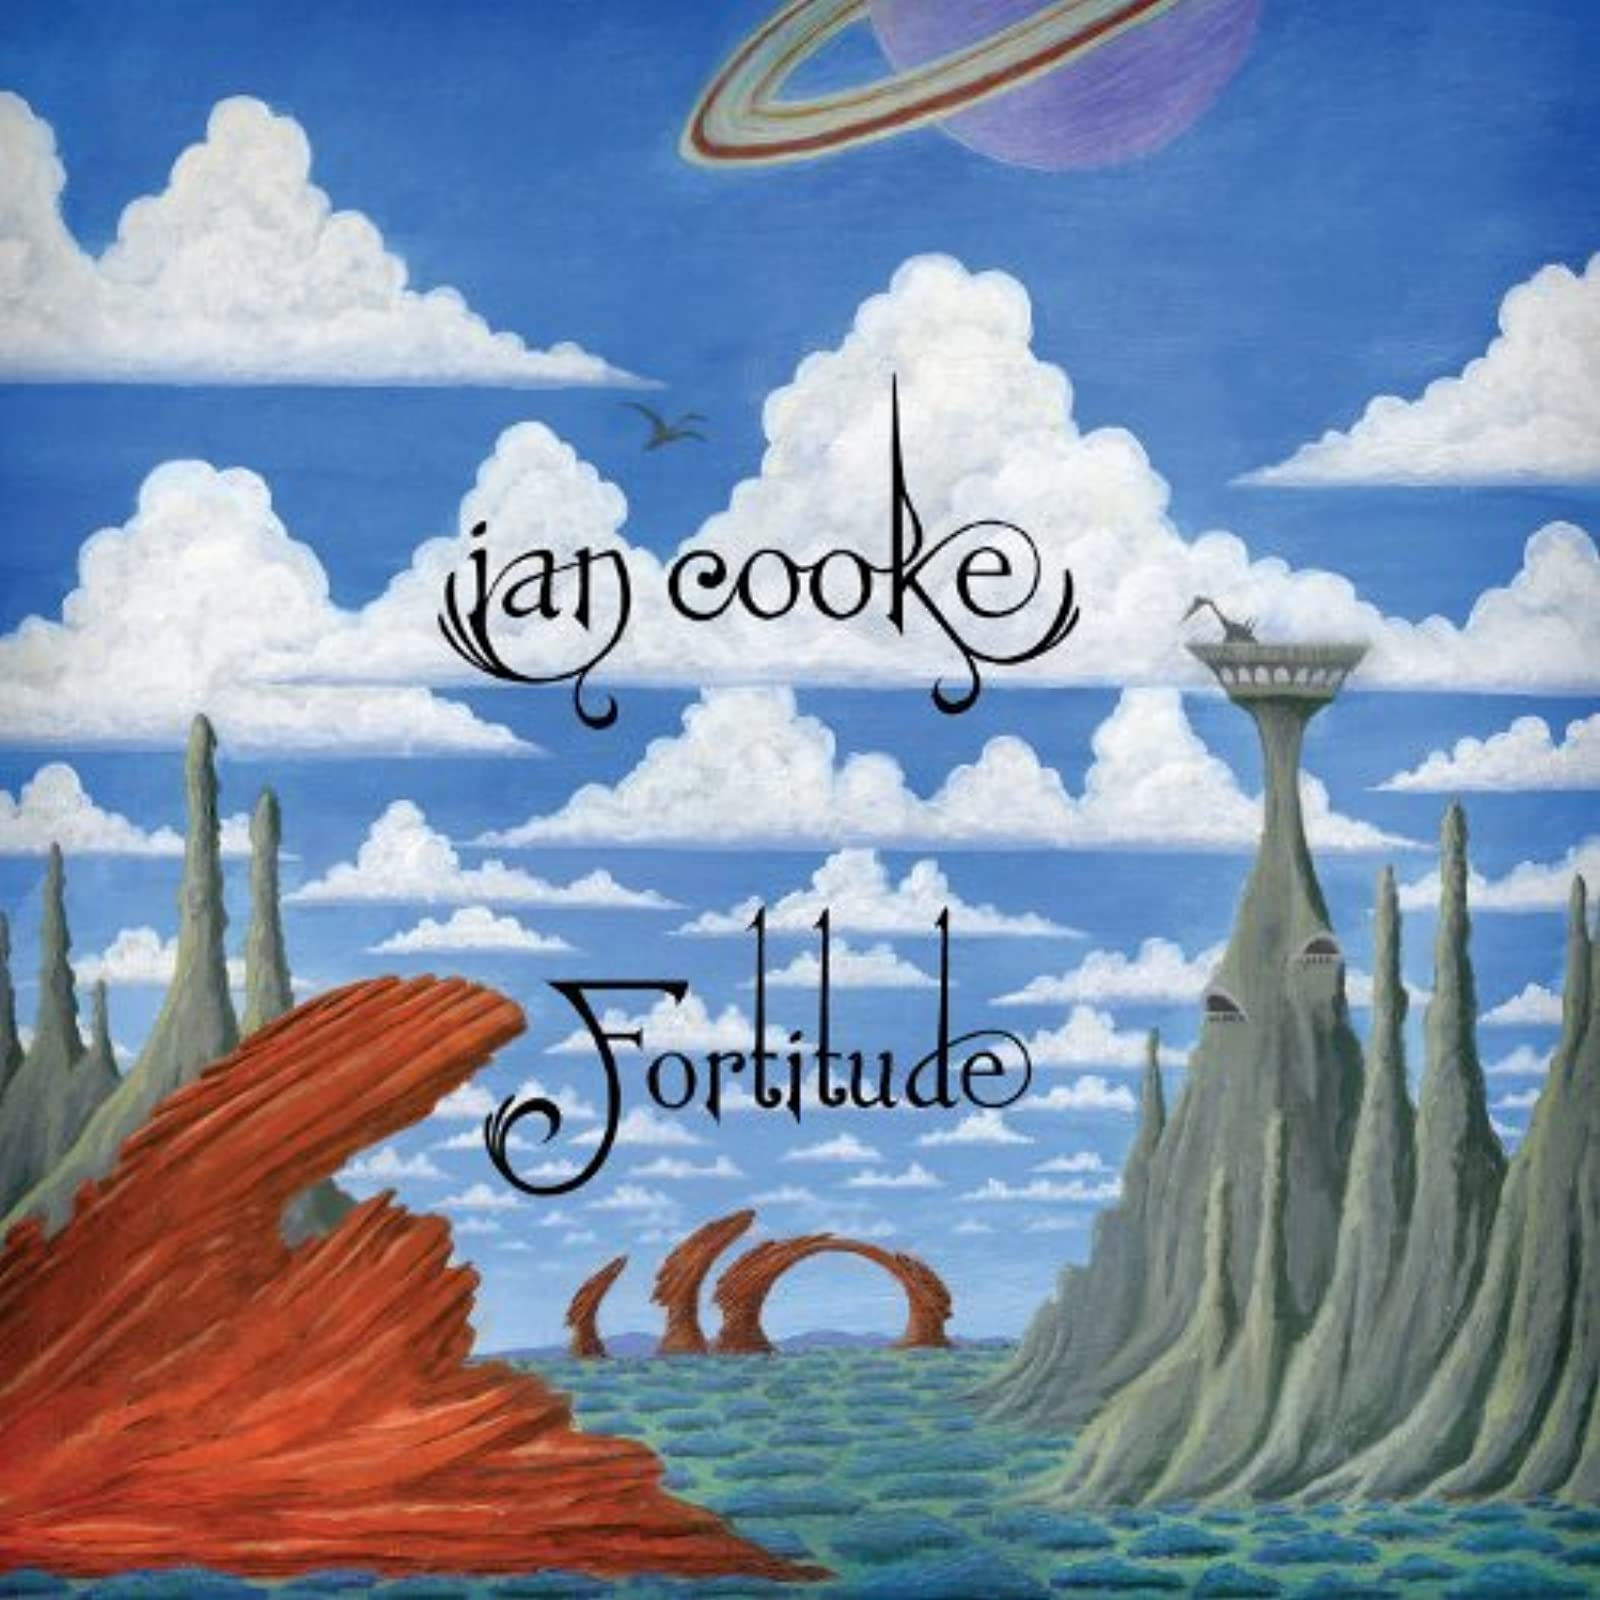 Fortitude By Ian Cooke On Vinyl Record